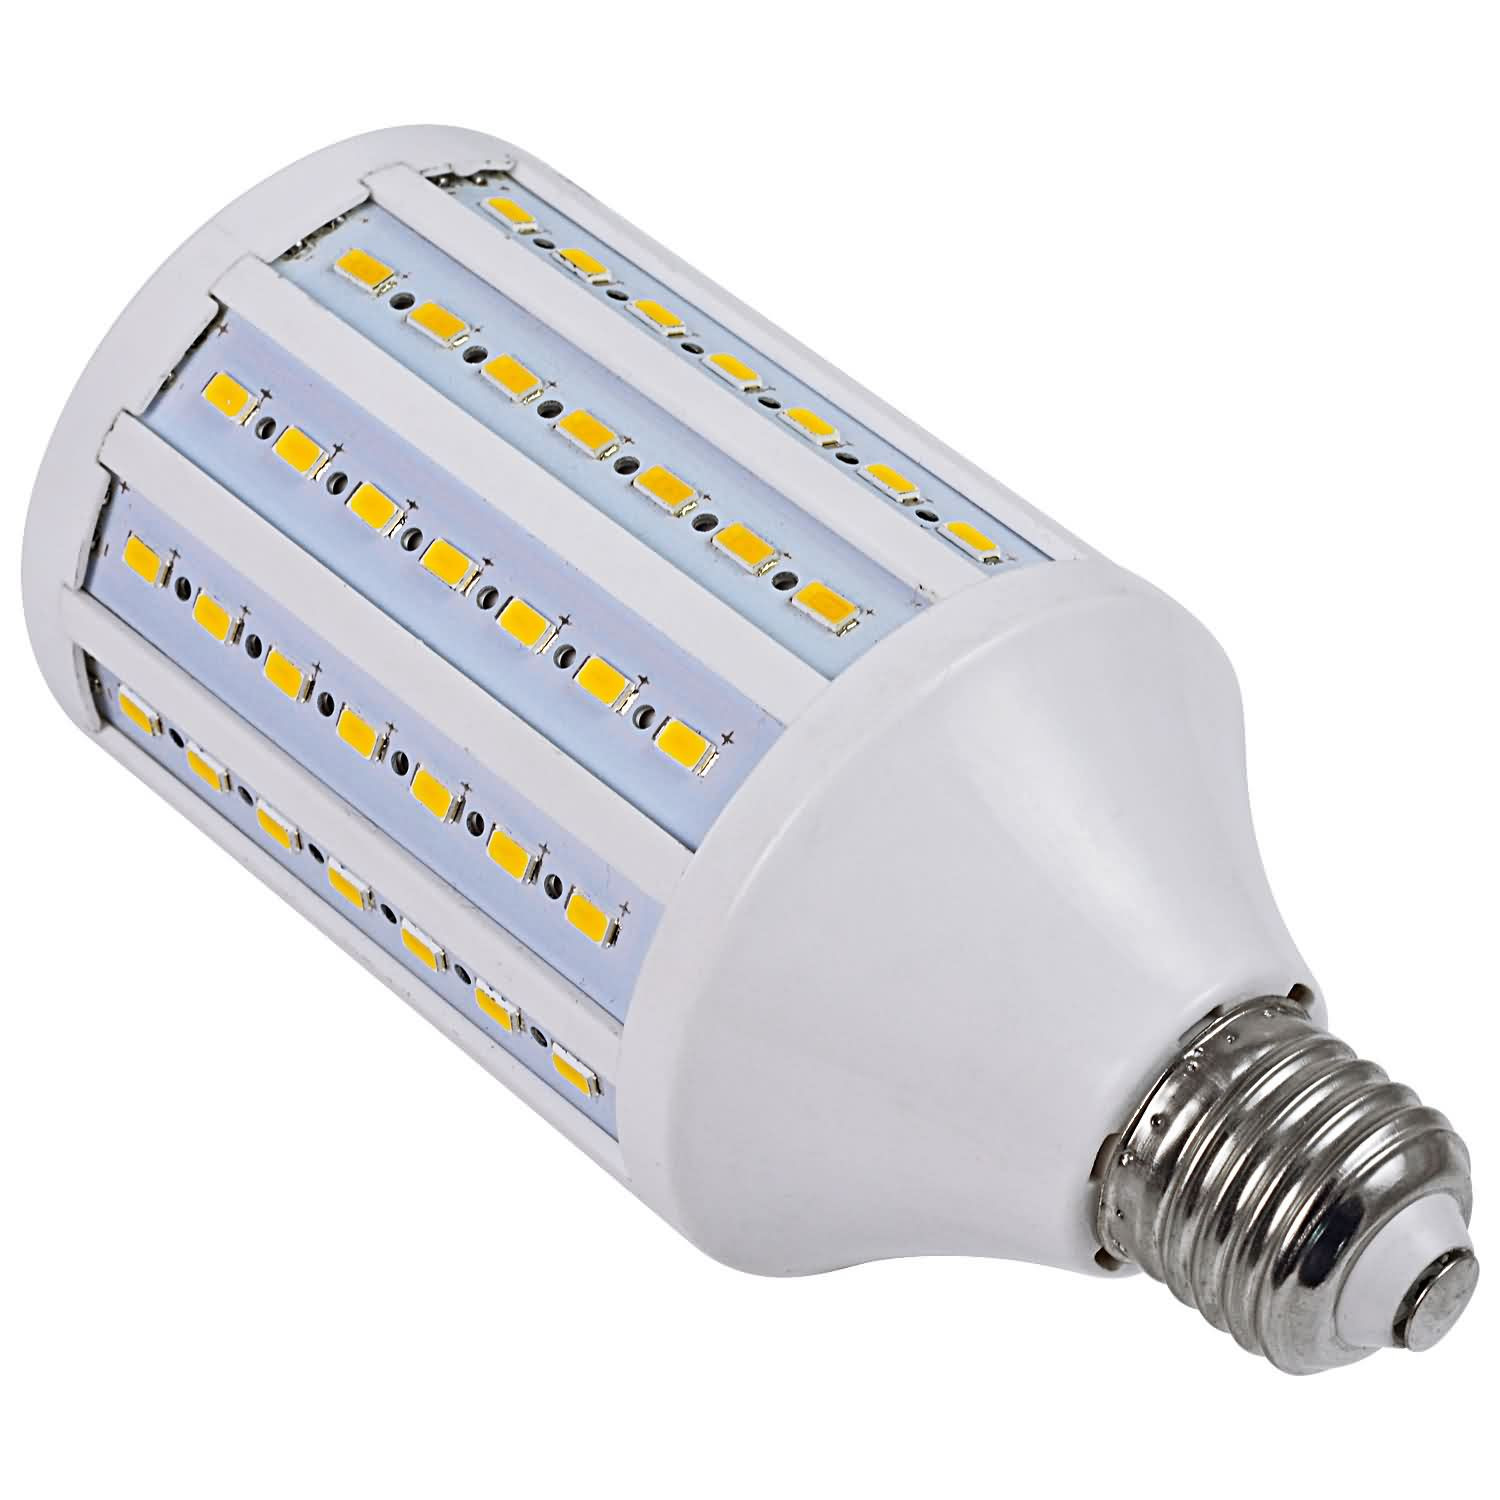 20w Led Dimmable: E27 20W Dimmable LED Corn Light 98x 5730 SMD LEDs LED Bulb